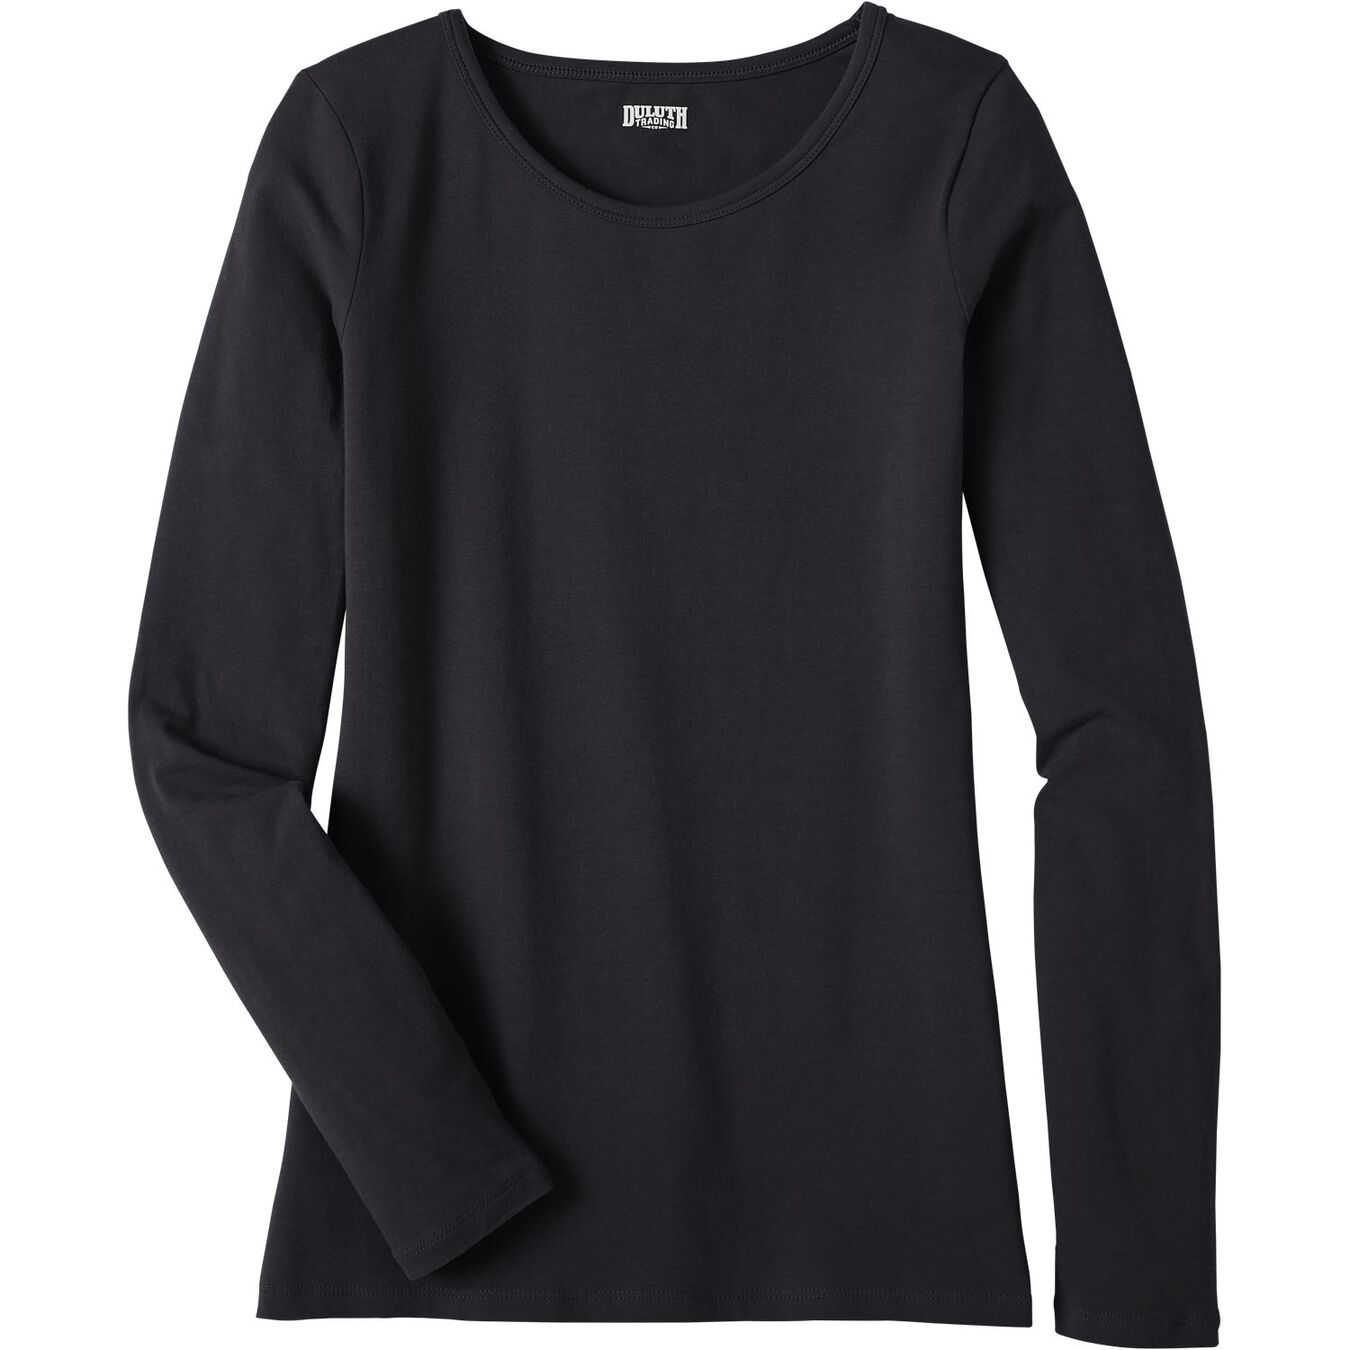 YSLMNOR Letter Printed Tshirt for Womens Round Neck Long Sleeve Pullover Tops Casual Blouses